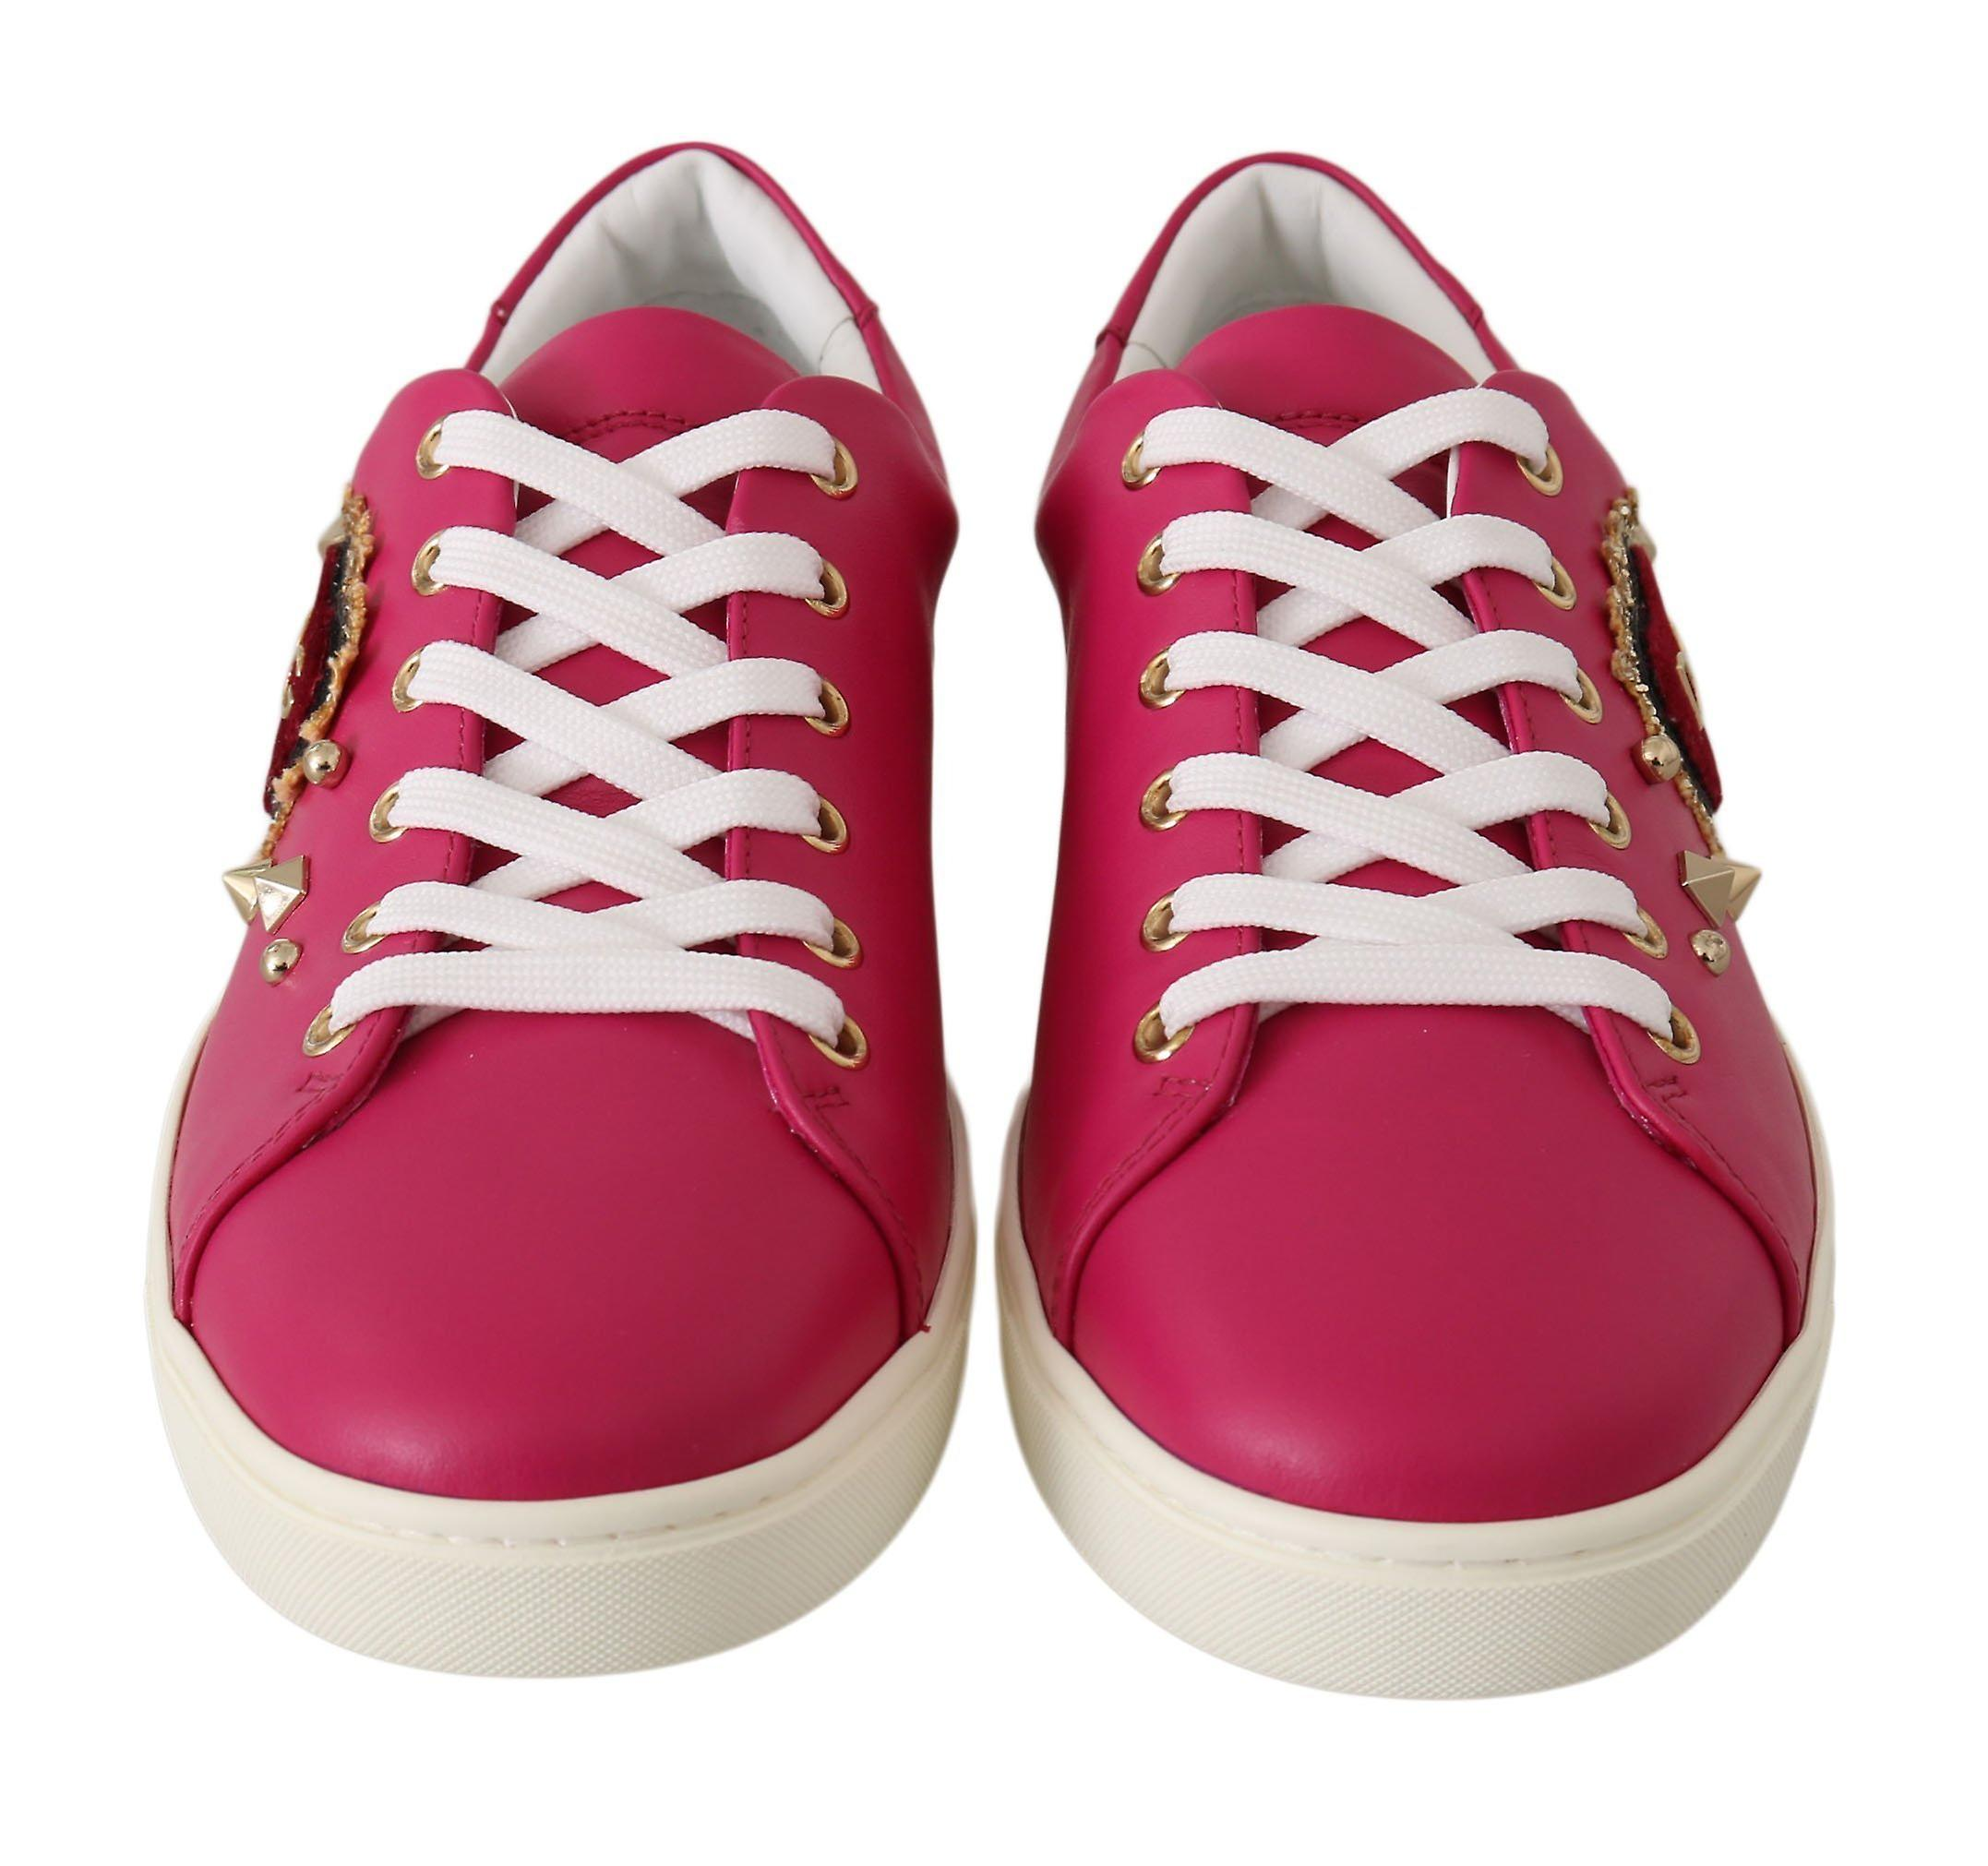 Dolce & Gabbana Pink Leather Gold Red Heart Shoes Sneakers -- LA59814576